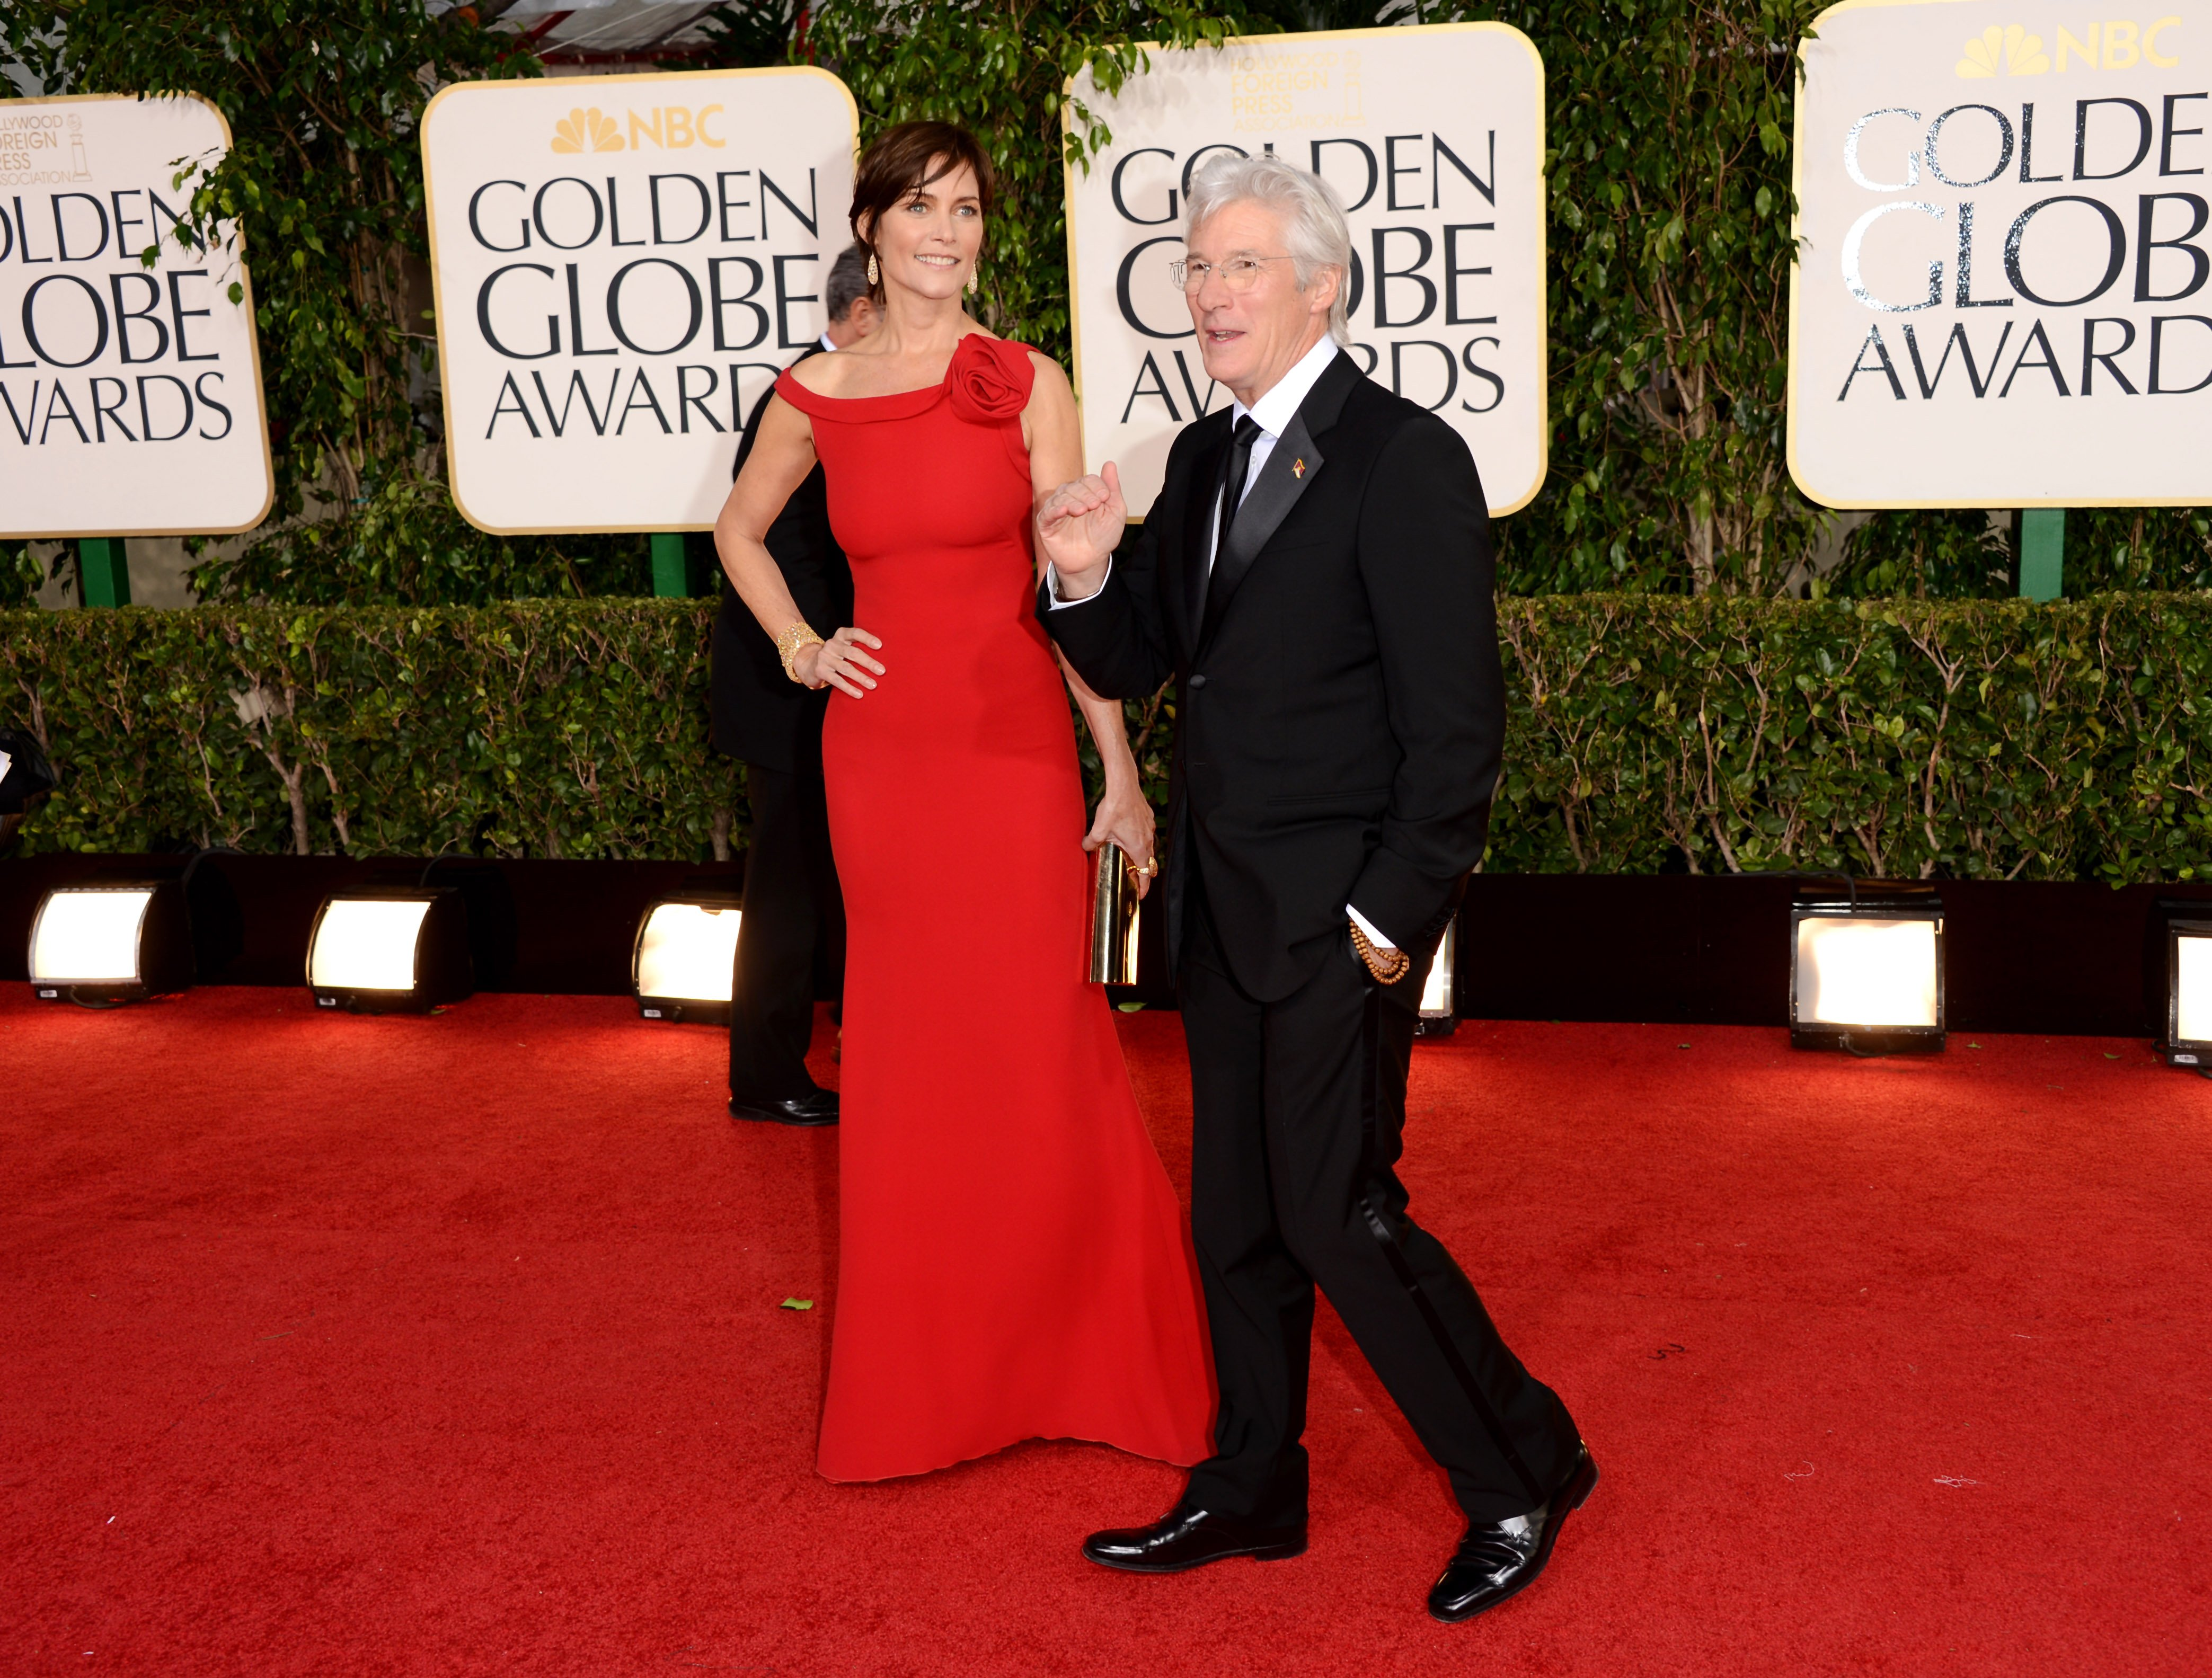 Carey Lowell (L) and actor Richard Gere arrive at the 70th Annual Golden Globe Awards held at The Beverly Hilton Hotel on January 13, 2013, in Beverly Hills, California. | Source: Getty Images.